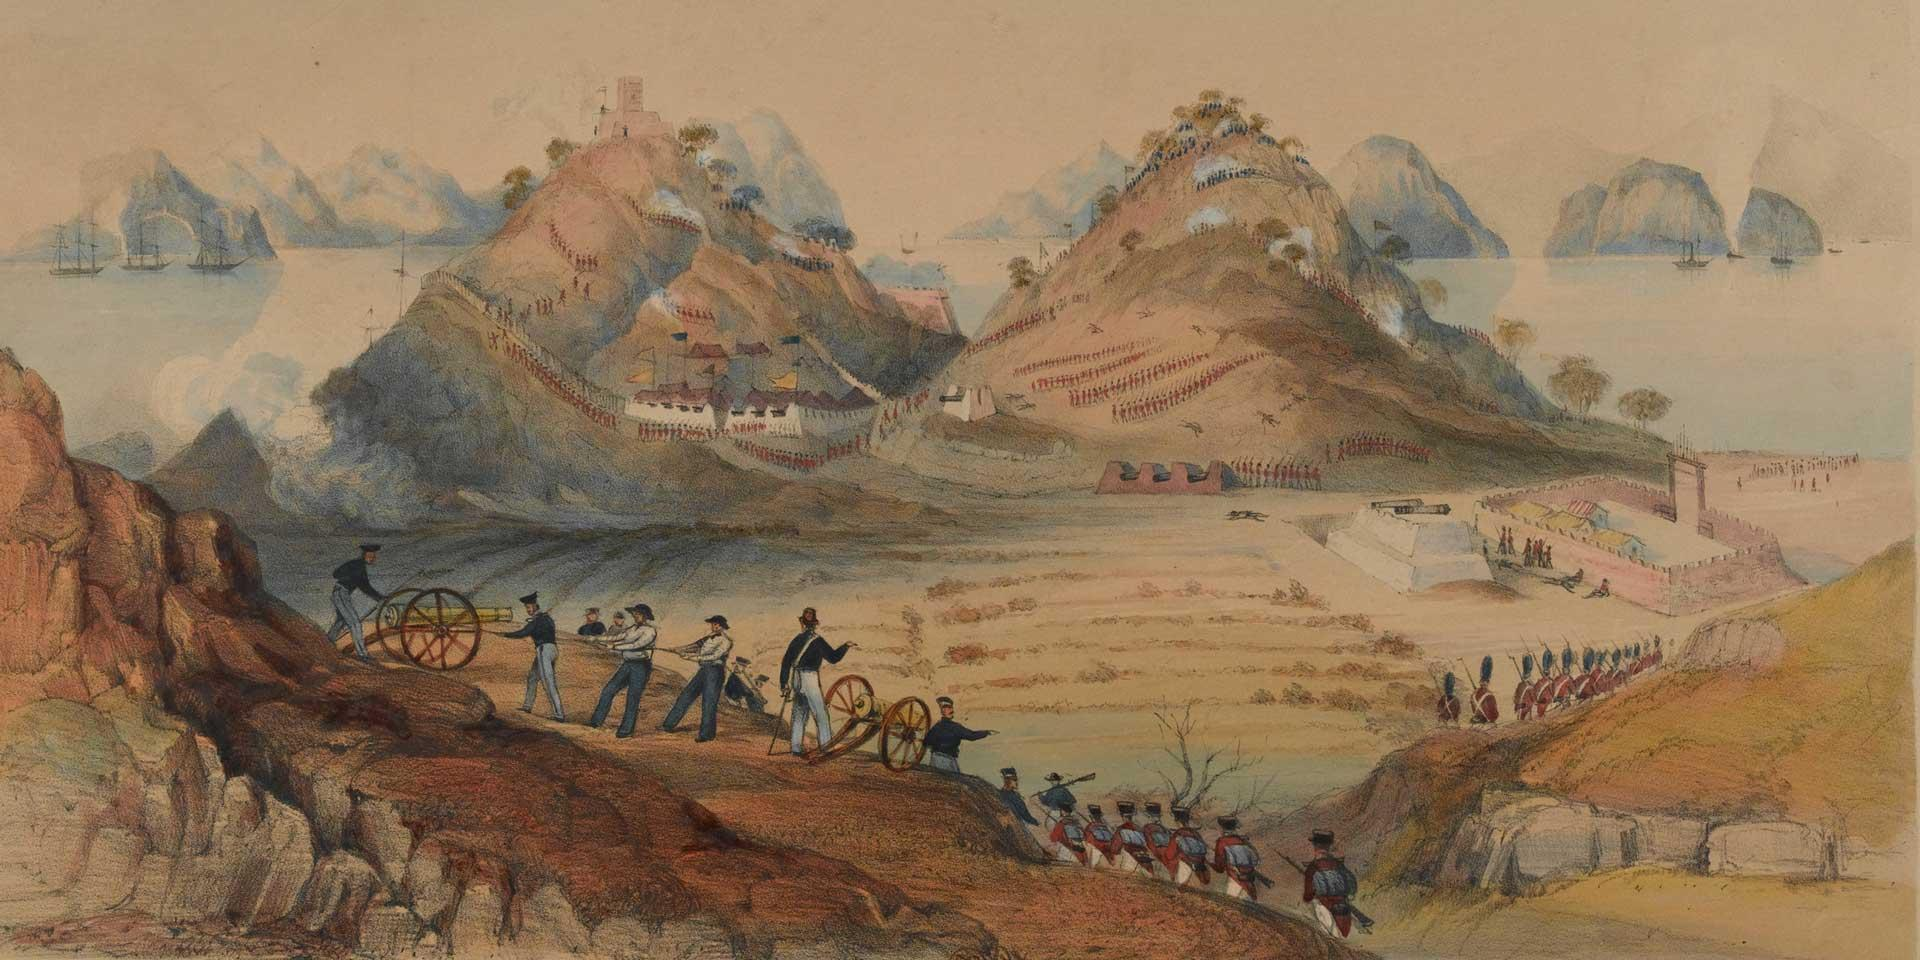 The 26th (Cameronian) Regiment at the storming of Chuenpi, 1841